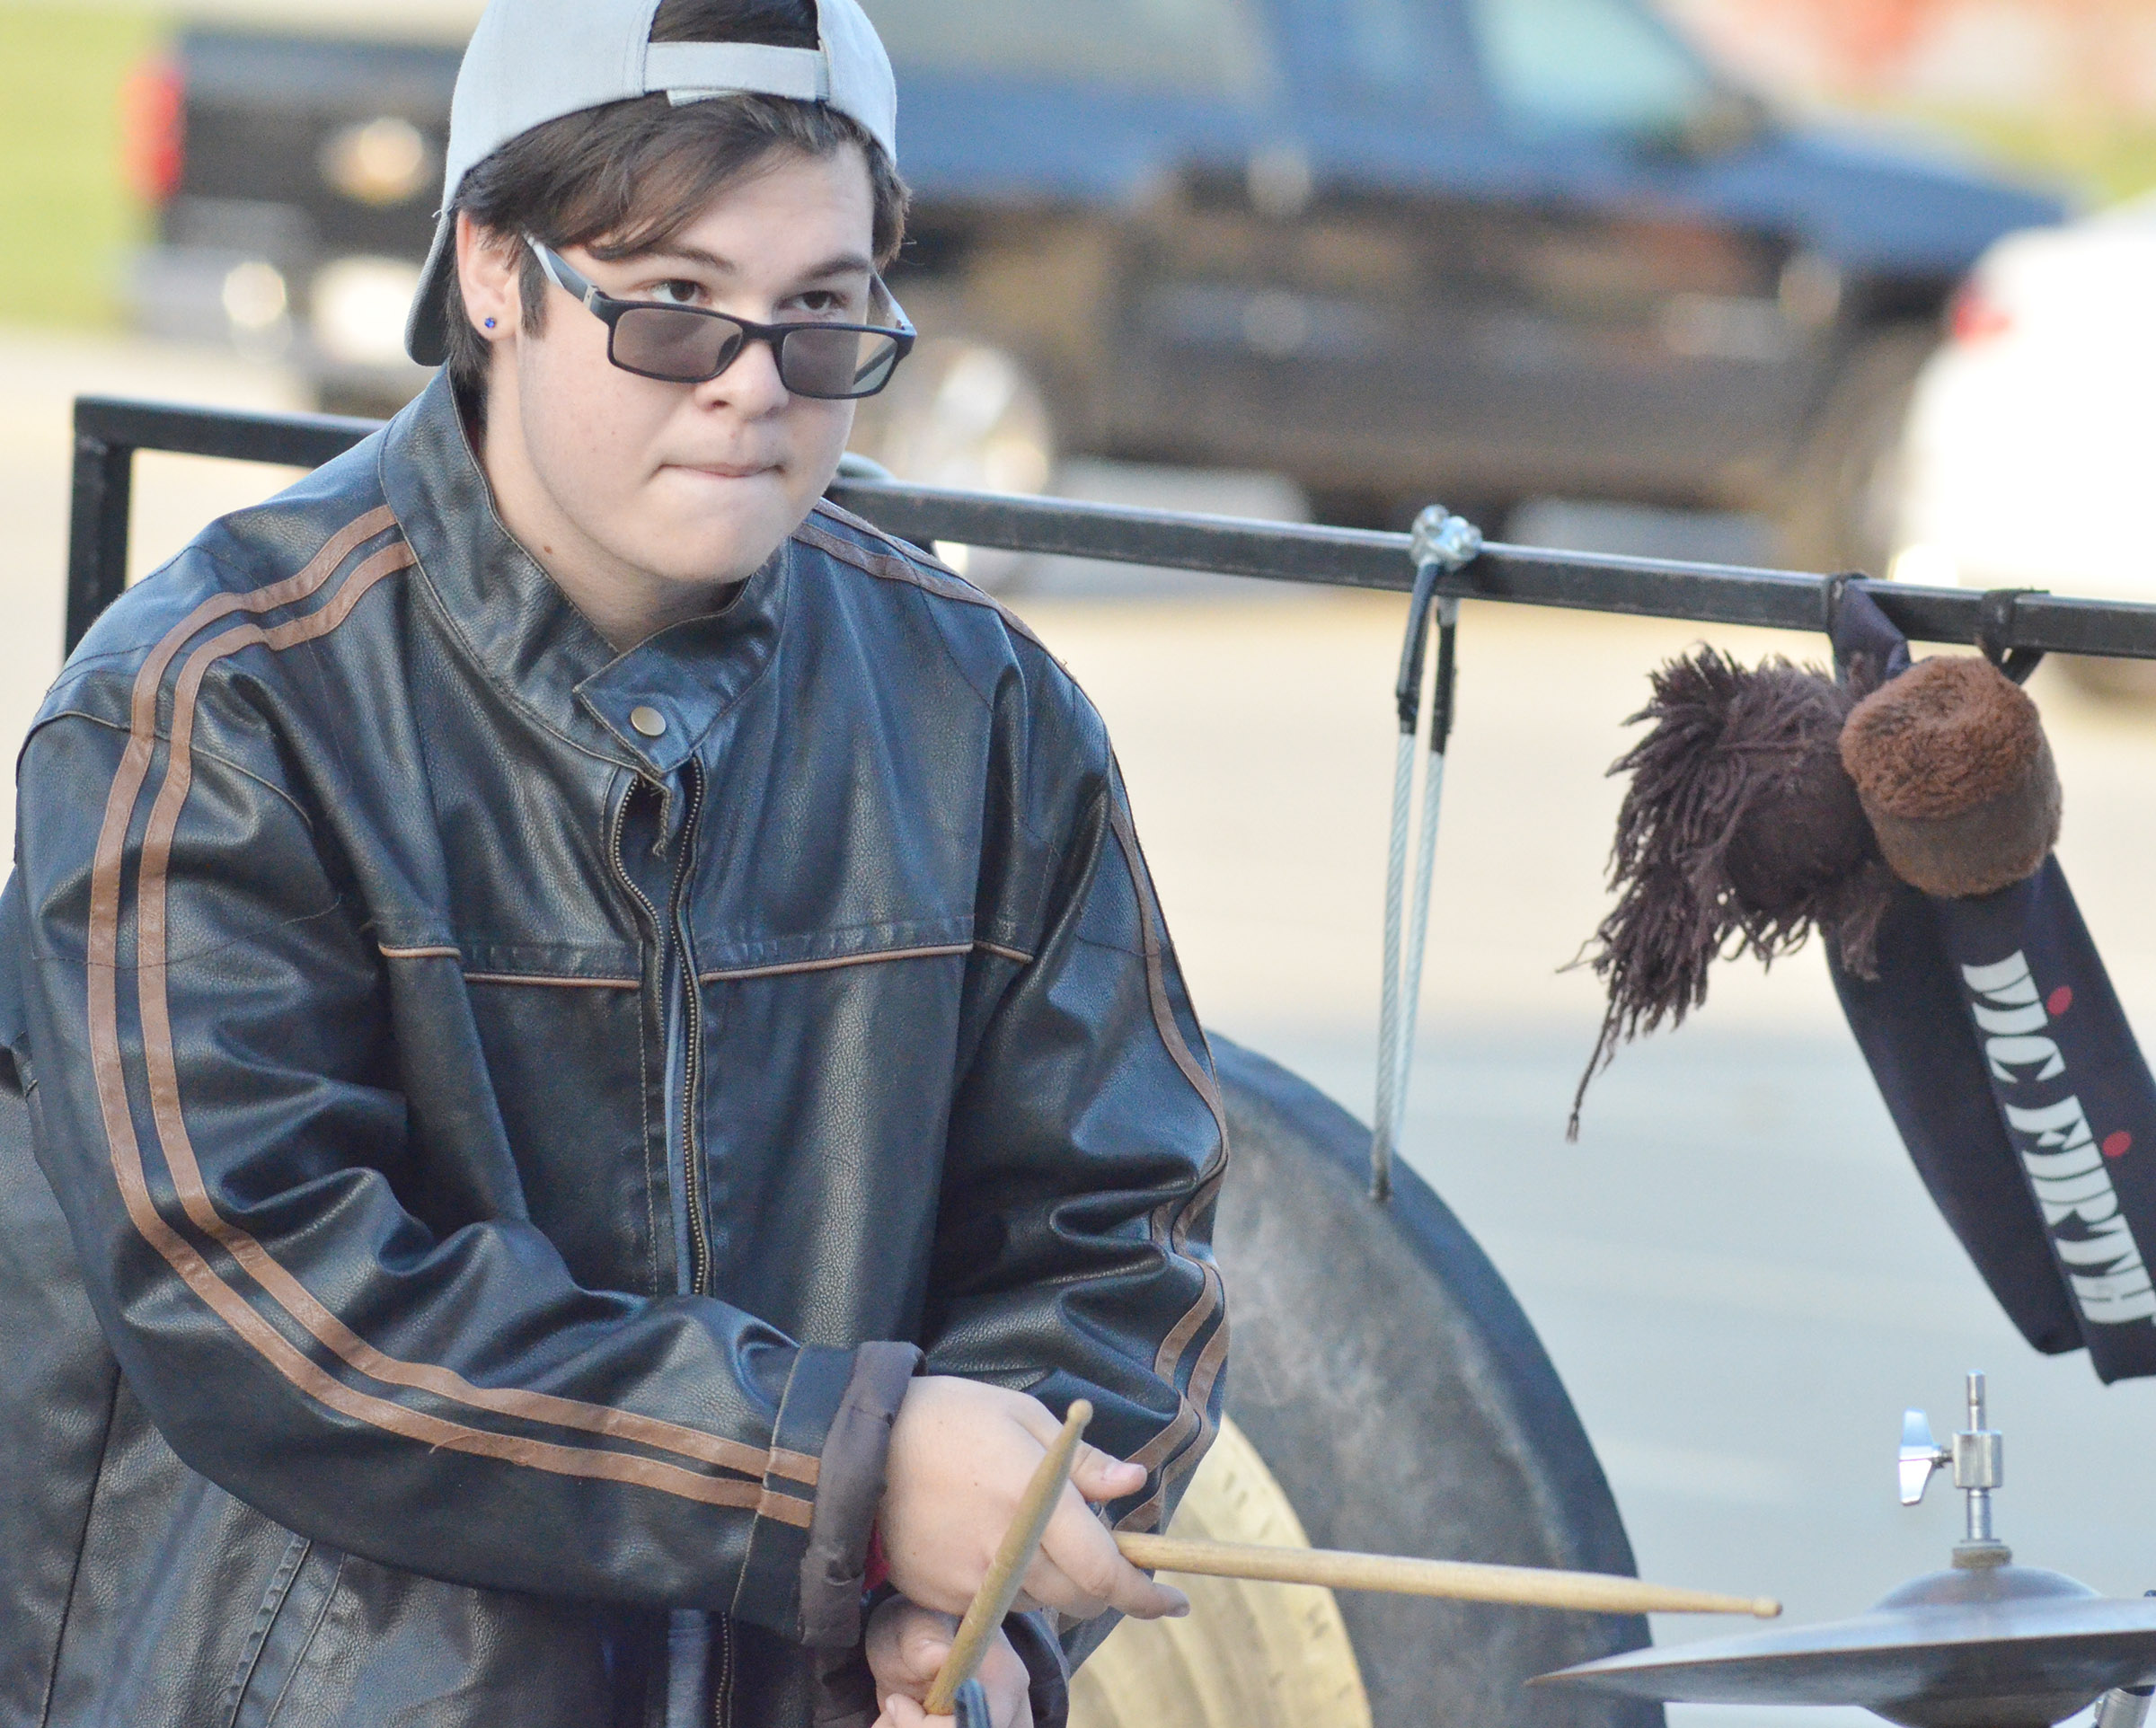 CHS junior Kyler Rakes plays percussion during the last practice of the season.